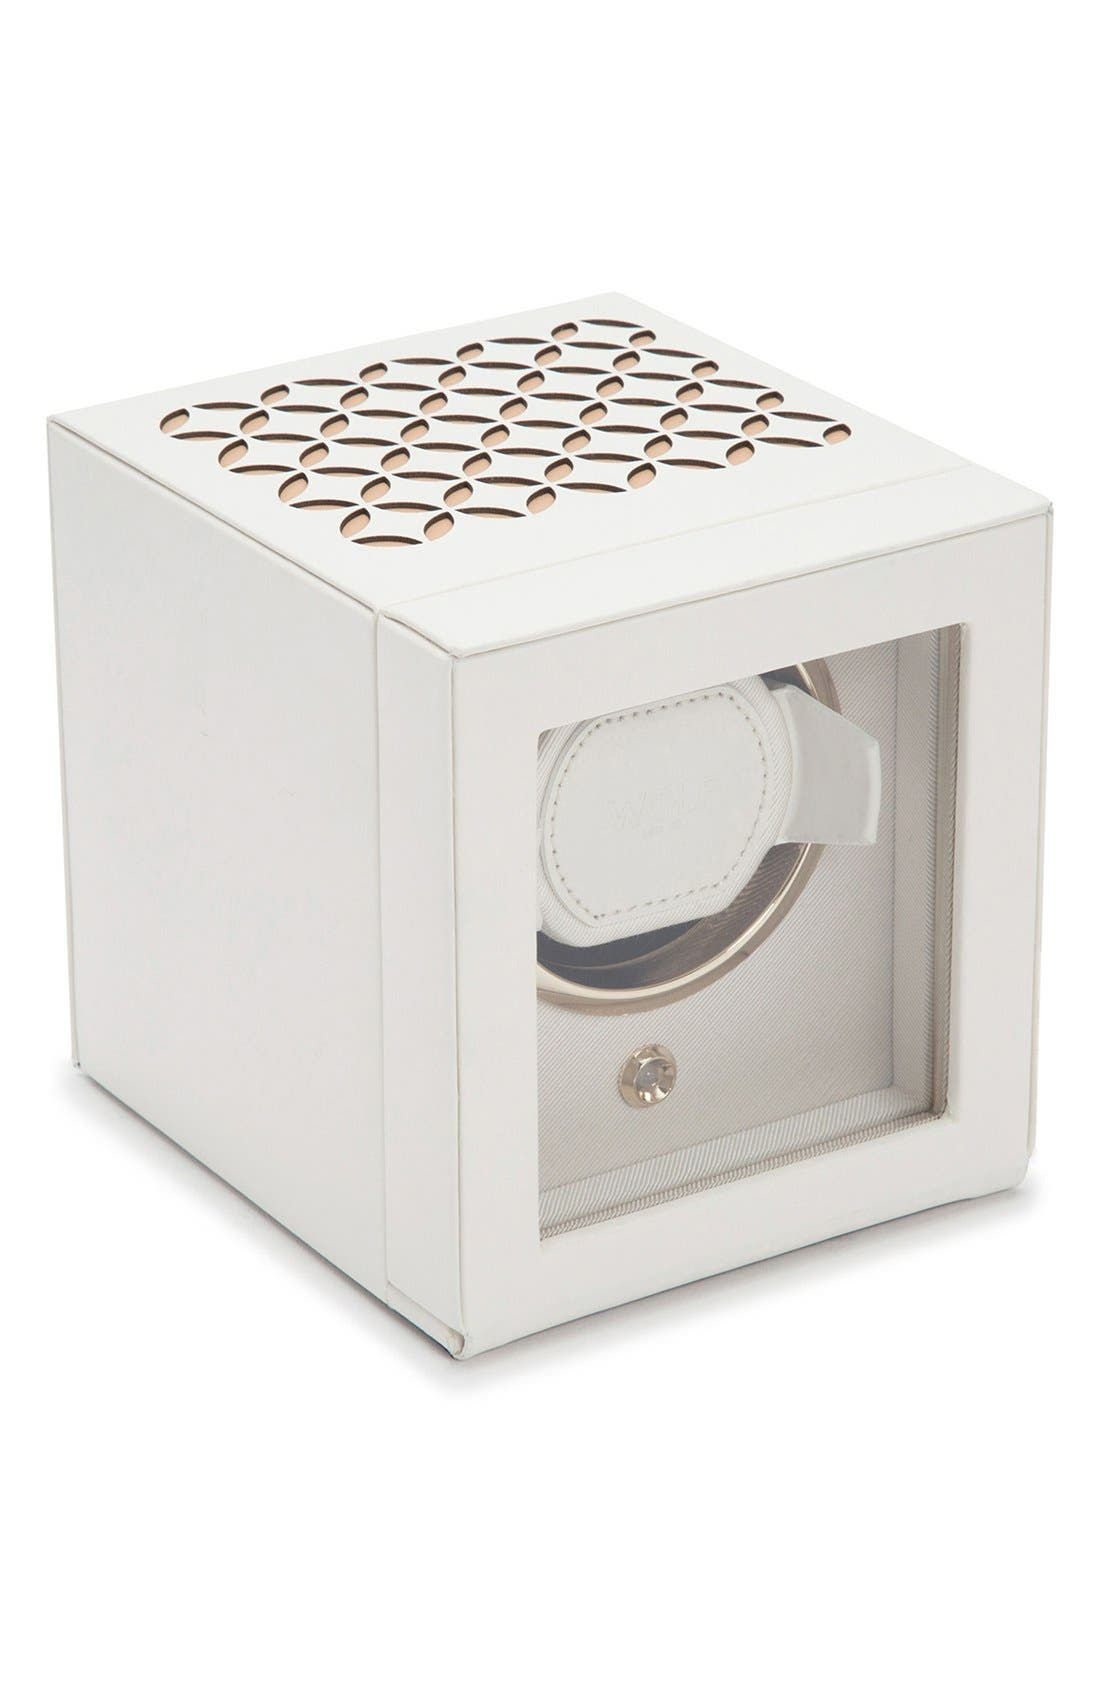 Watch Winder,                             Main thumbnail 1, color,                             CREAM